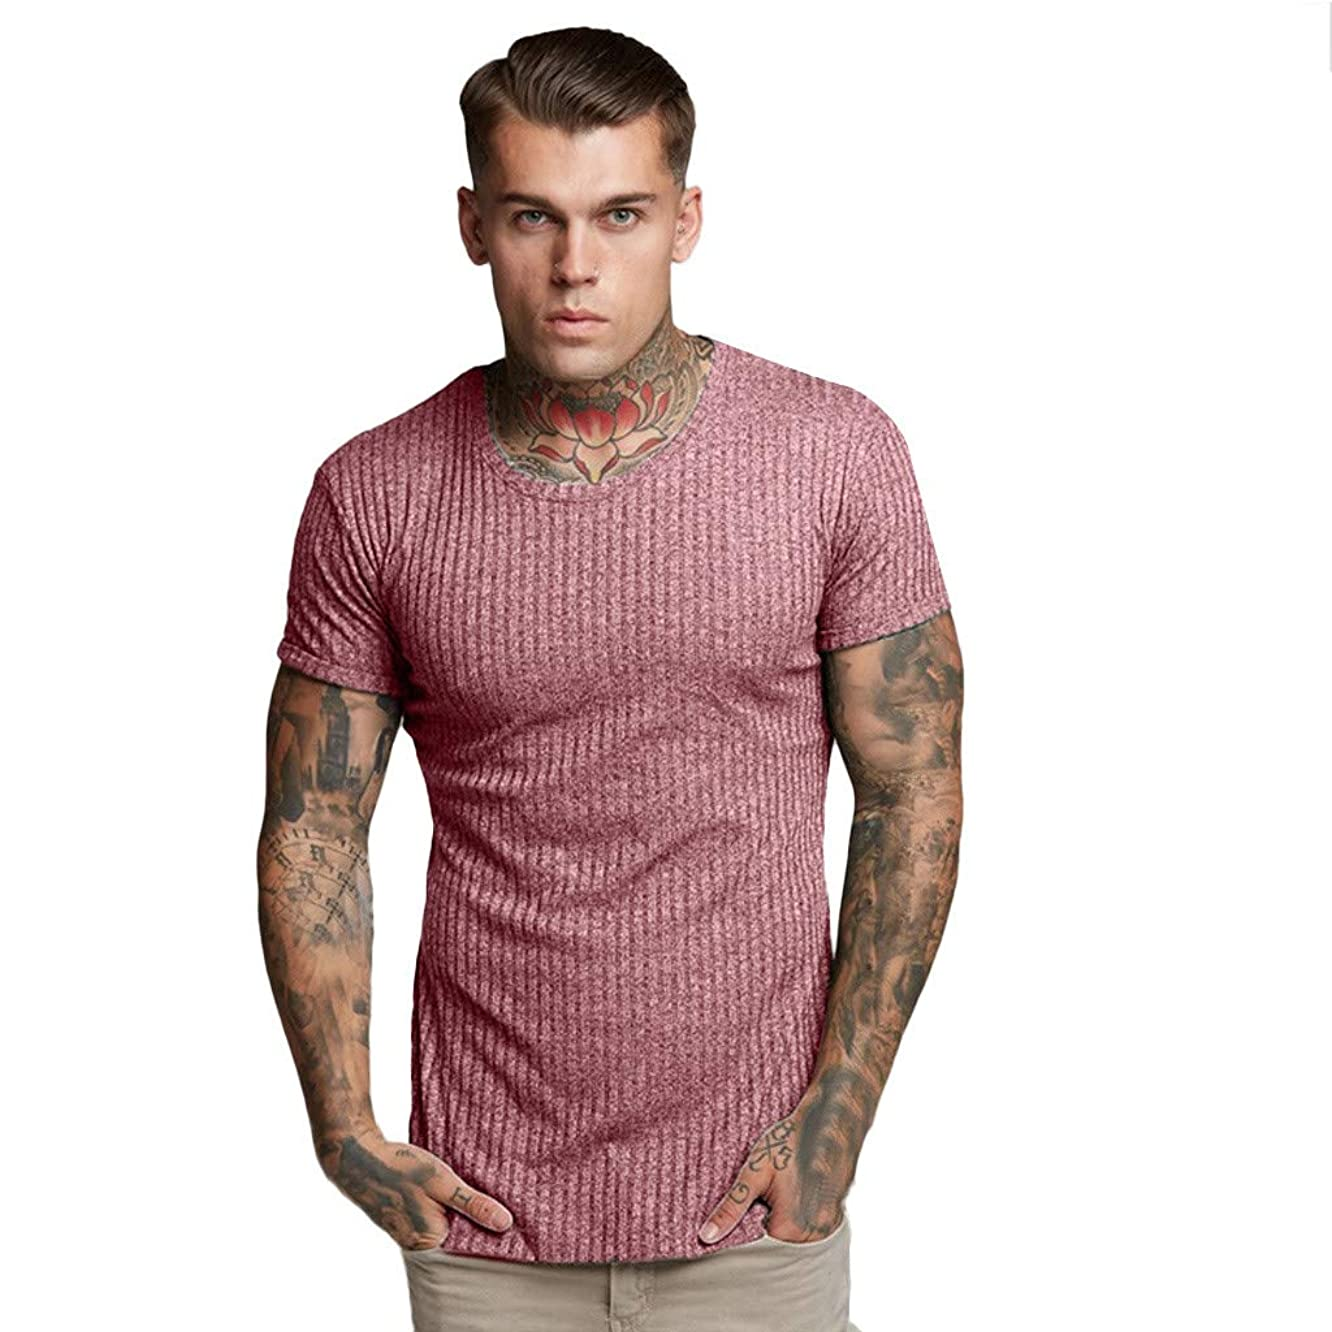 OrchidAmor Fashion Men's Casual Comfy Slim Fit Short Sleeve Sports Shirt Top Blouse 2019 Summer Gym Tees